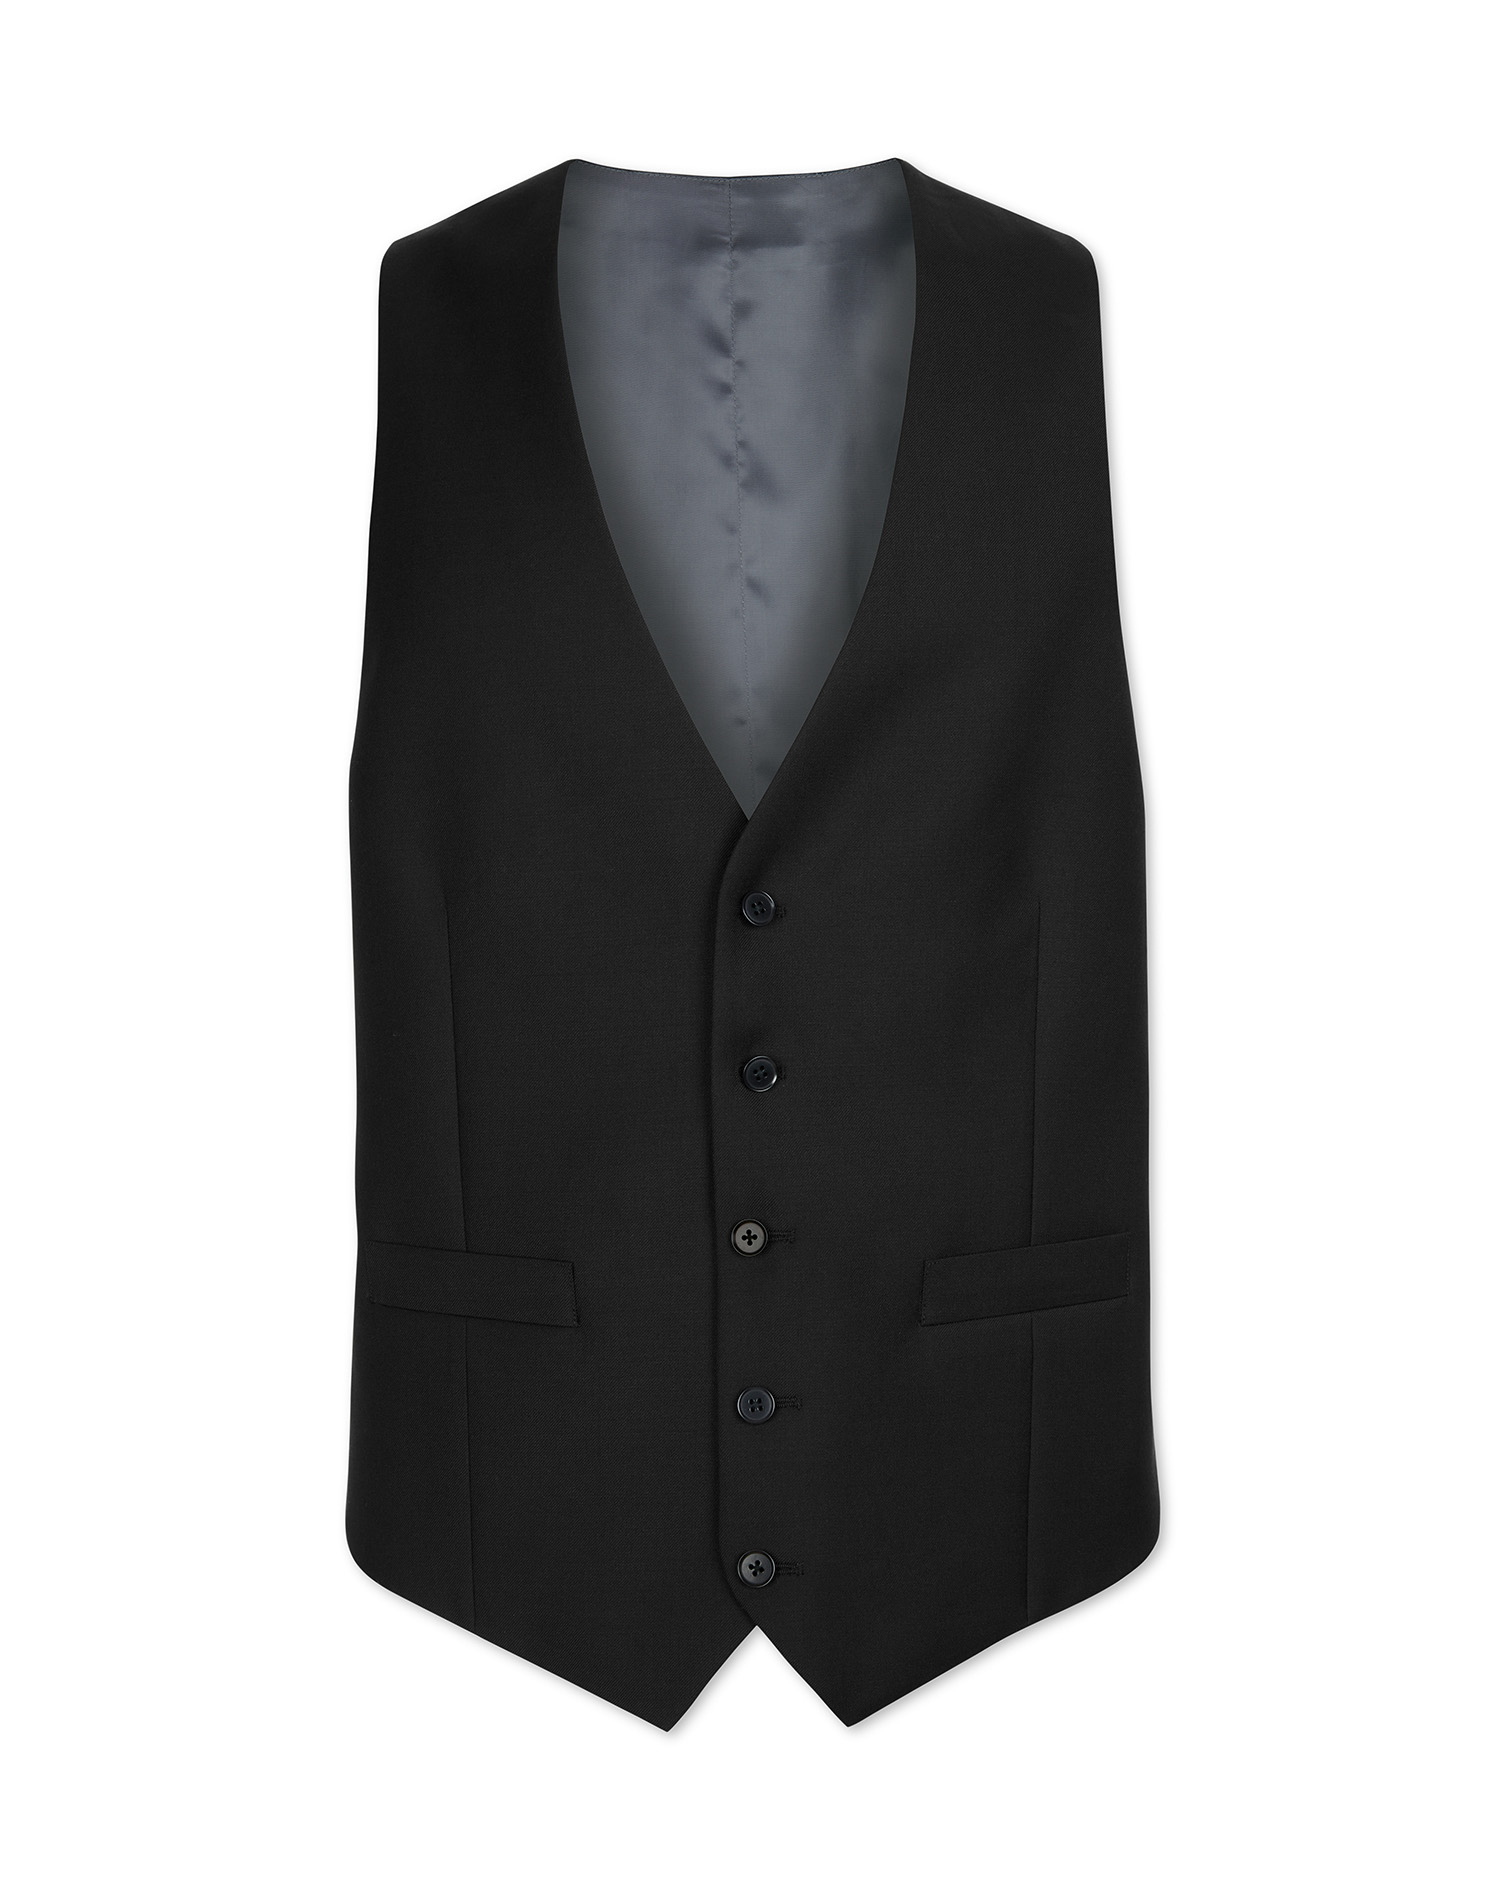 Black Adjustable Fit Twill Business Suit Wool Waistcoat Size w38 by Charles Tyrwhitt